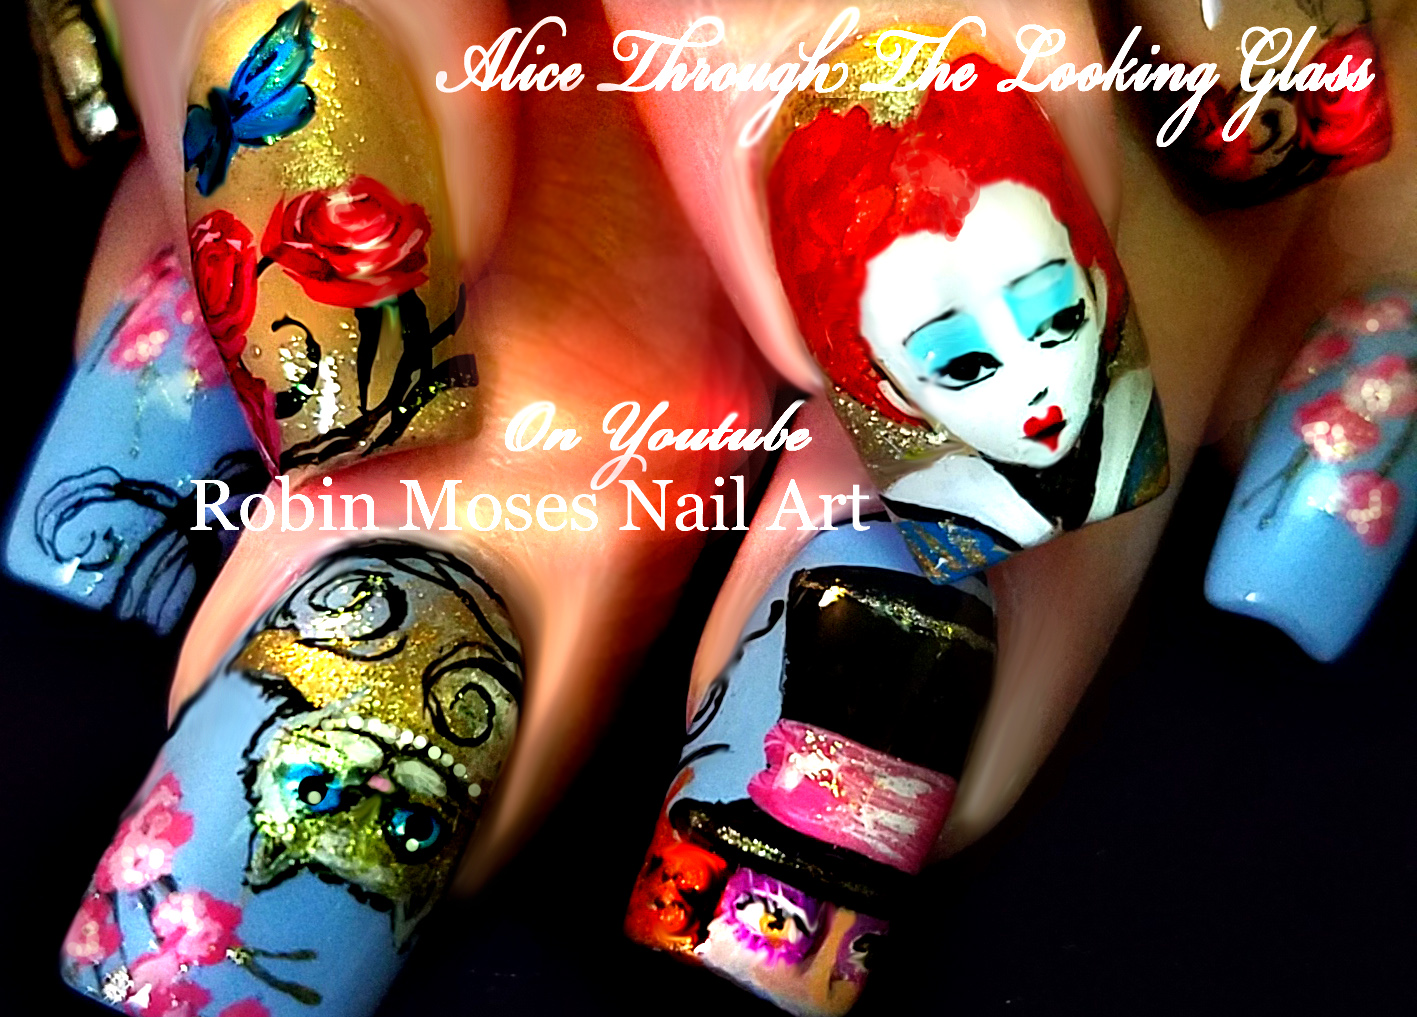 Robin Moses Nail Art: Alice Through the Looking Glass nail